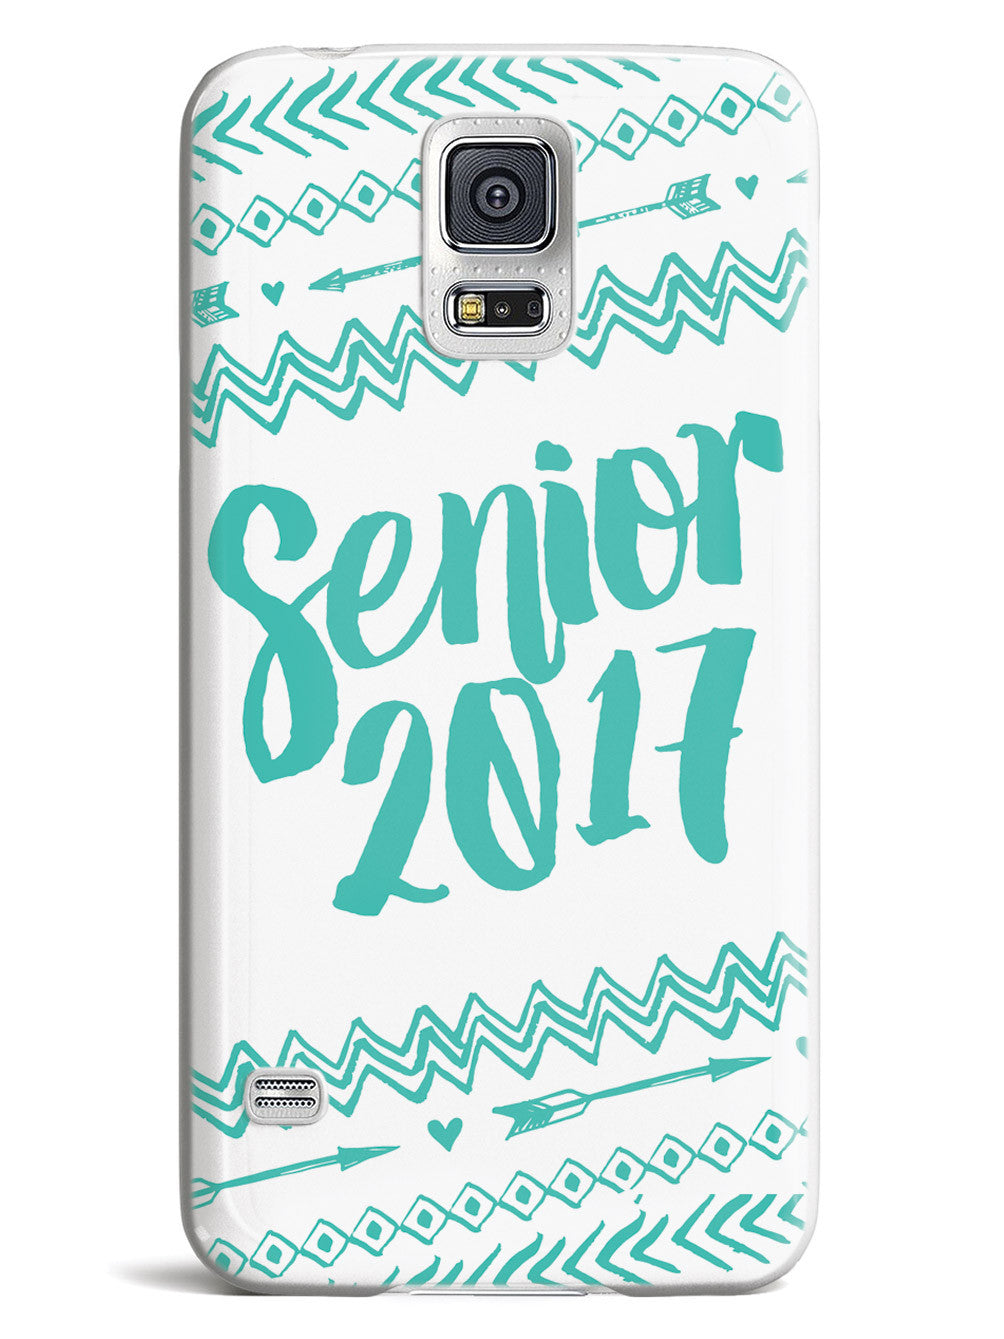 Senior 2017 - Teal Case